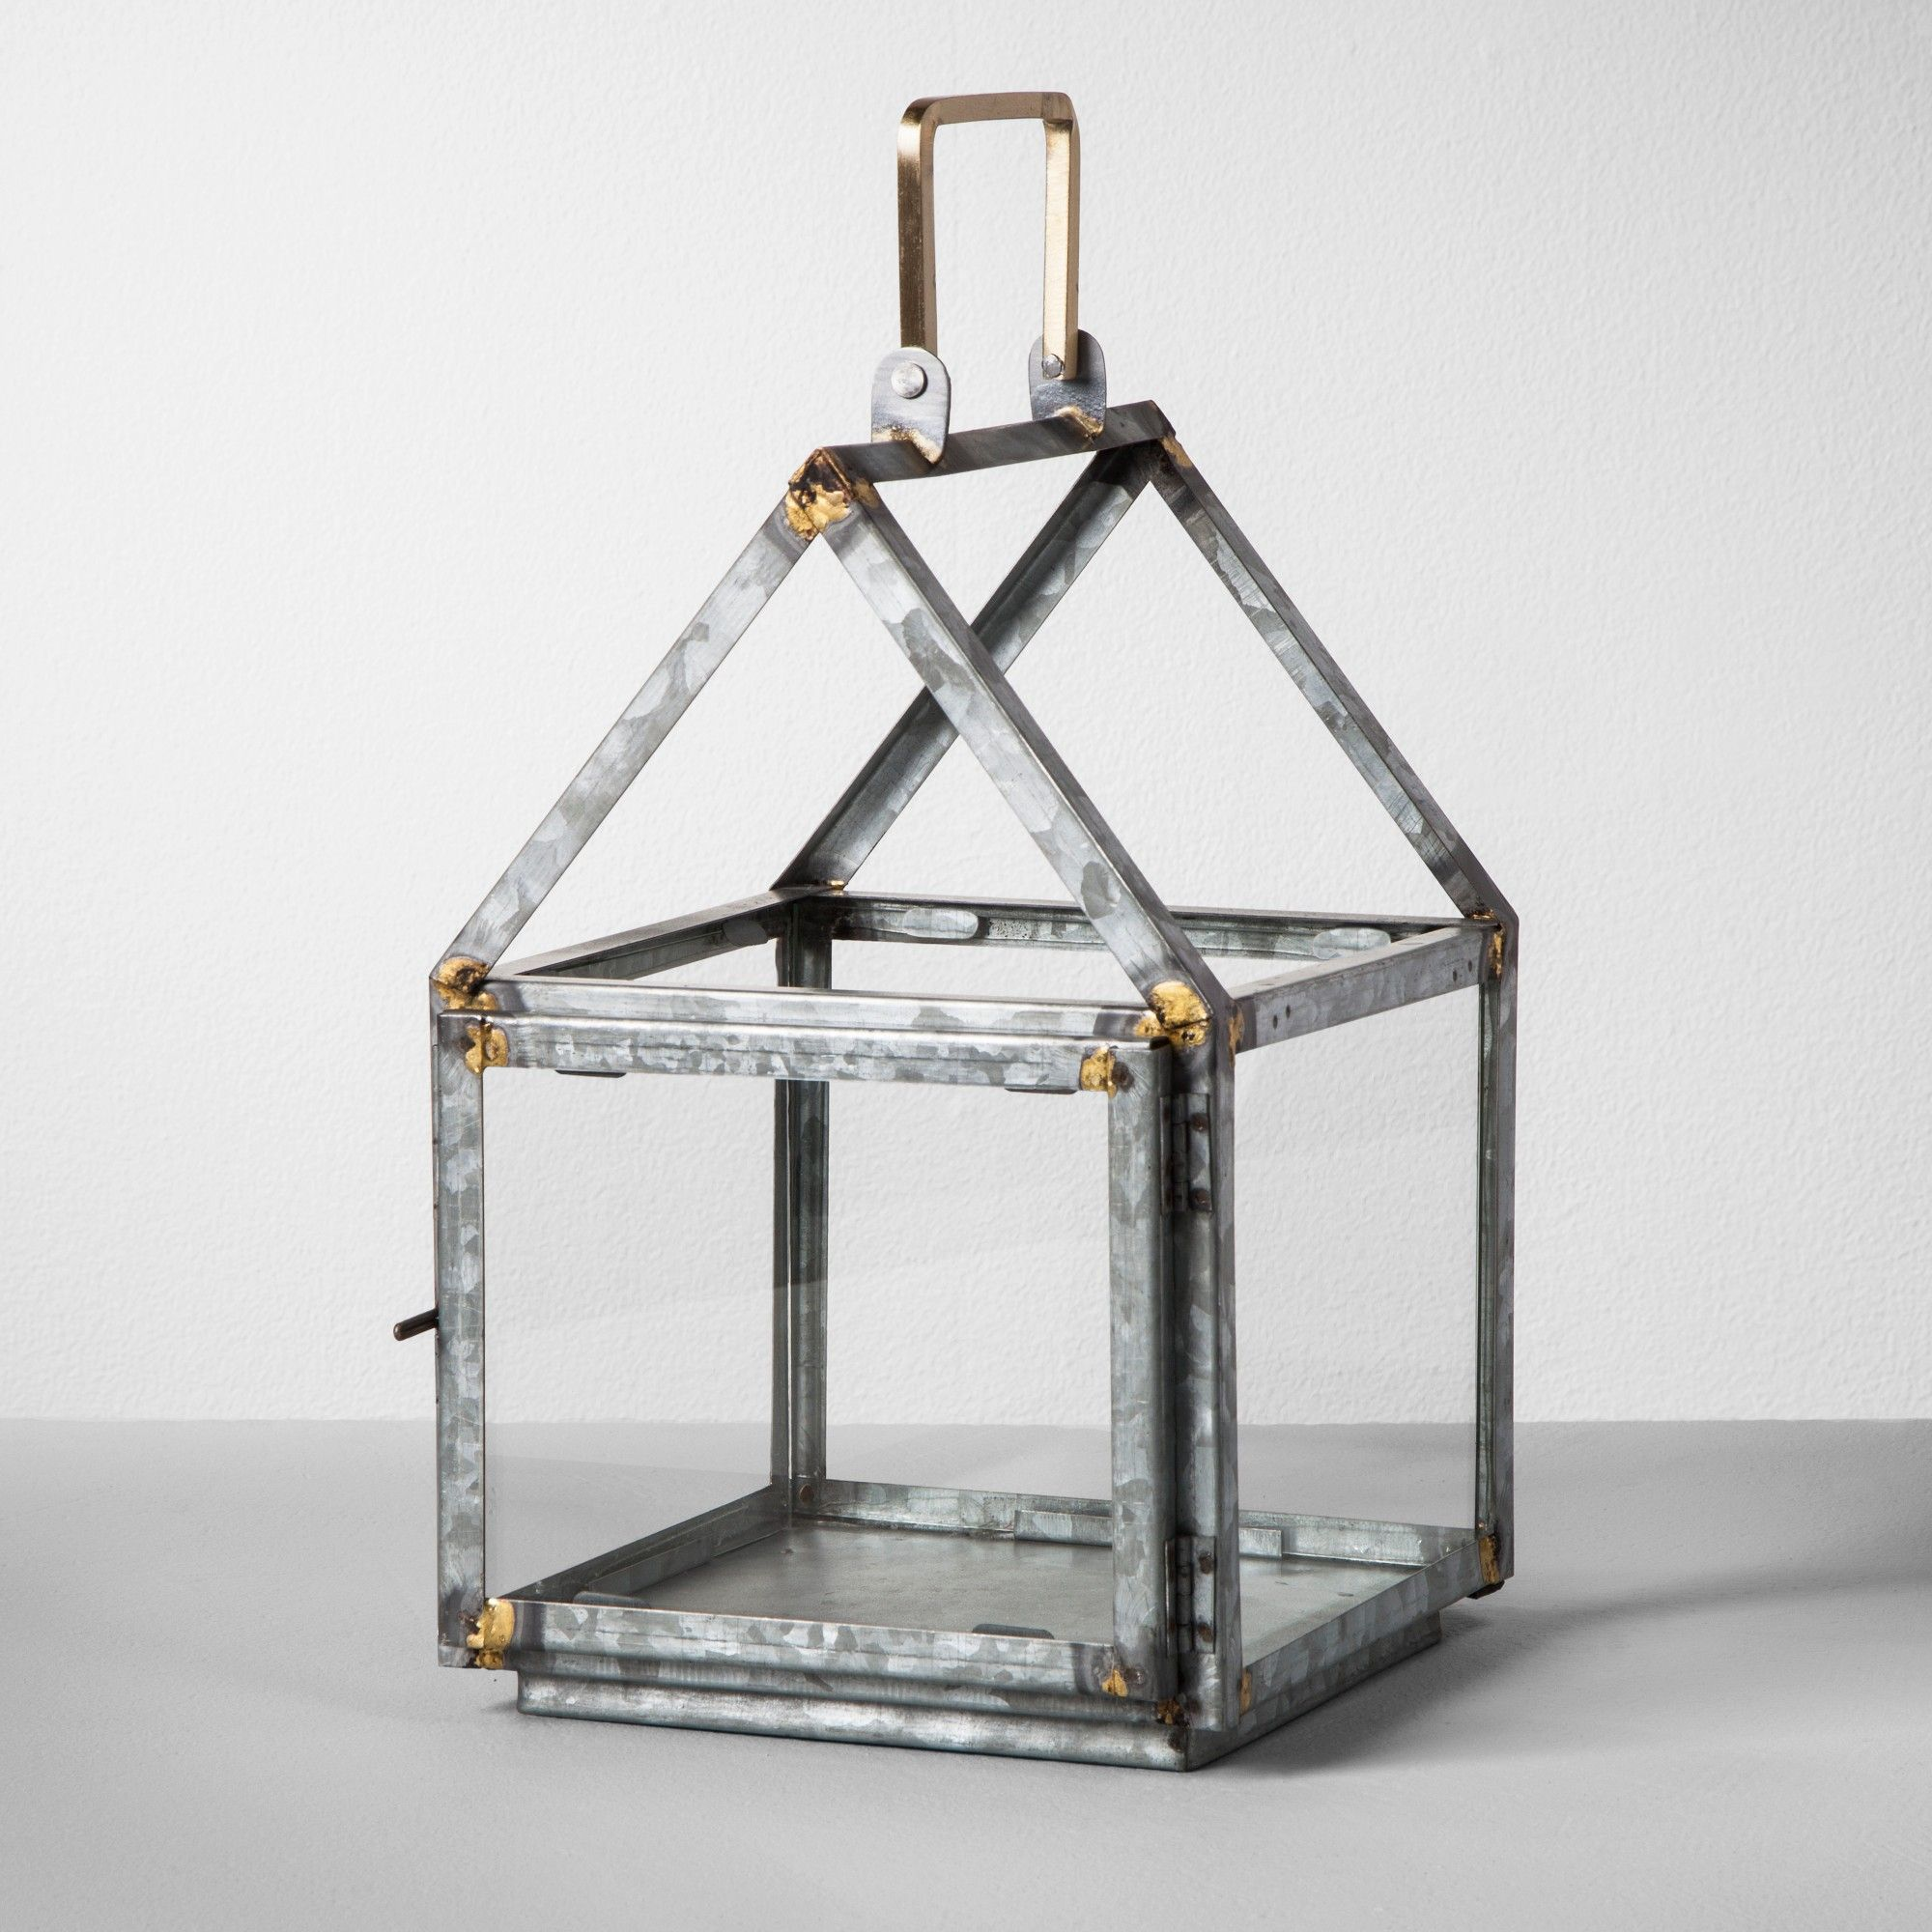 Galvanized House Lantern Small Hearth Amp Hand With Magnolia Pink Gray Winter Living Room